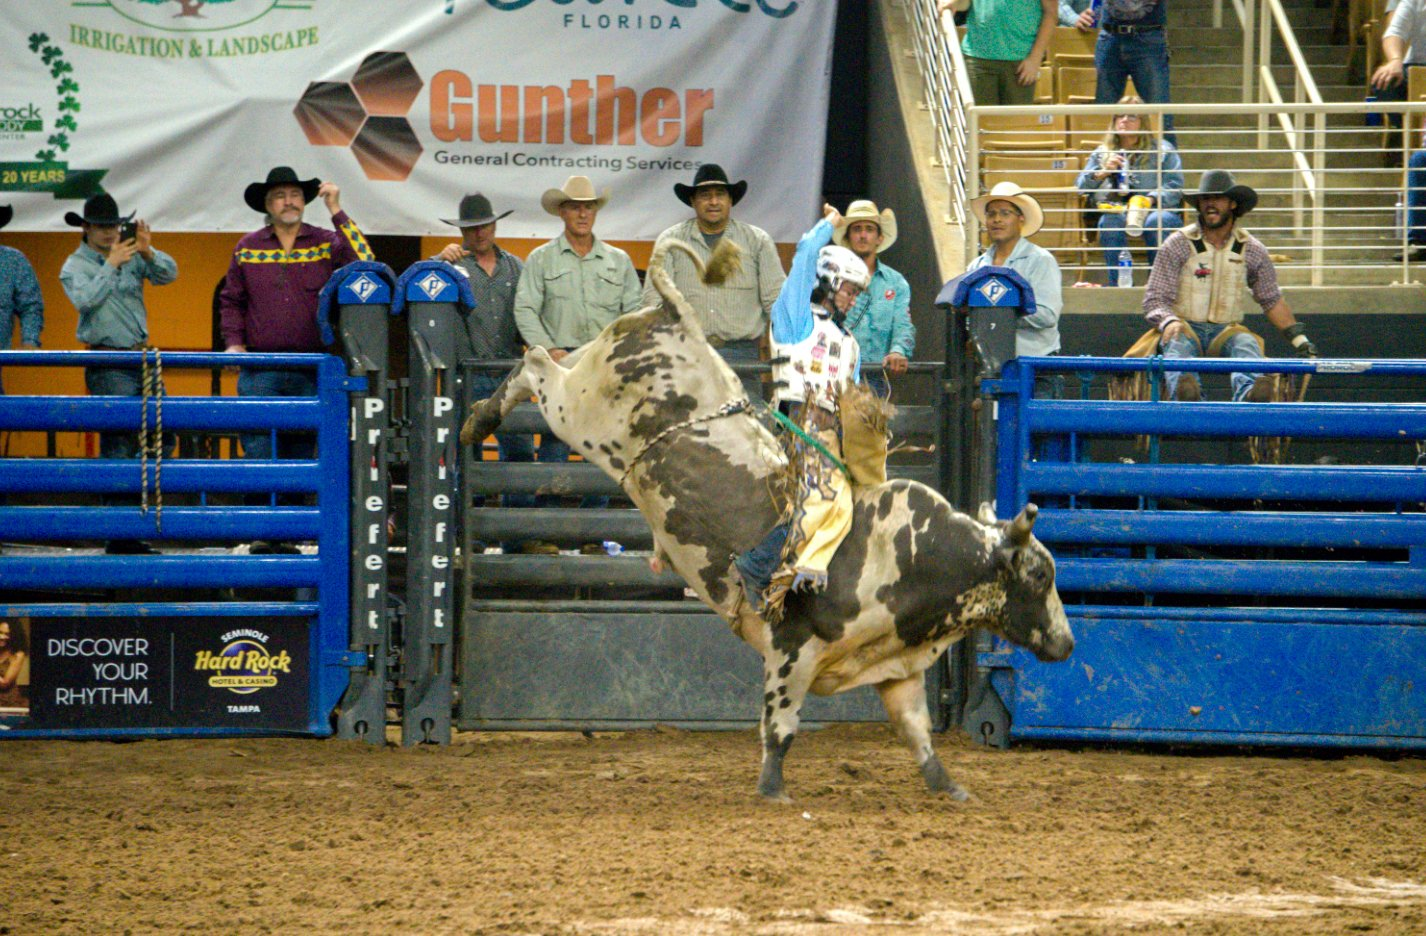 bull rider riding a brown and white spotted bucking bull in front of blue chutes